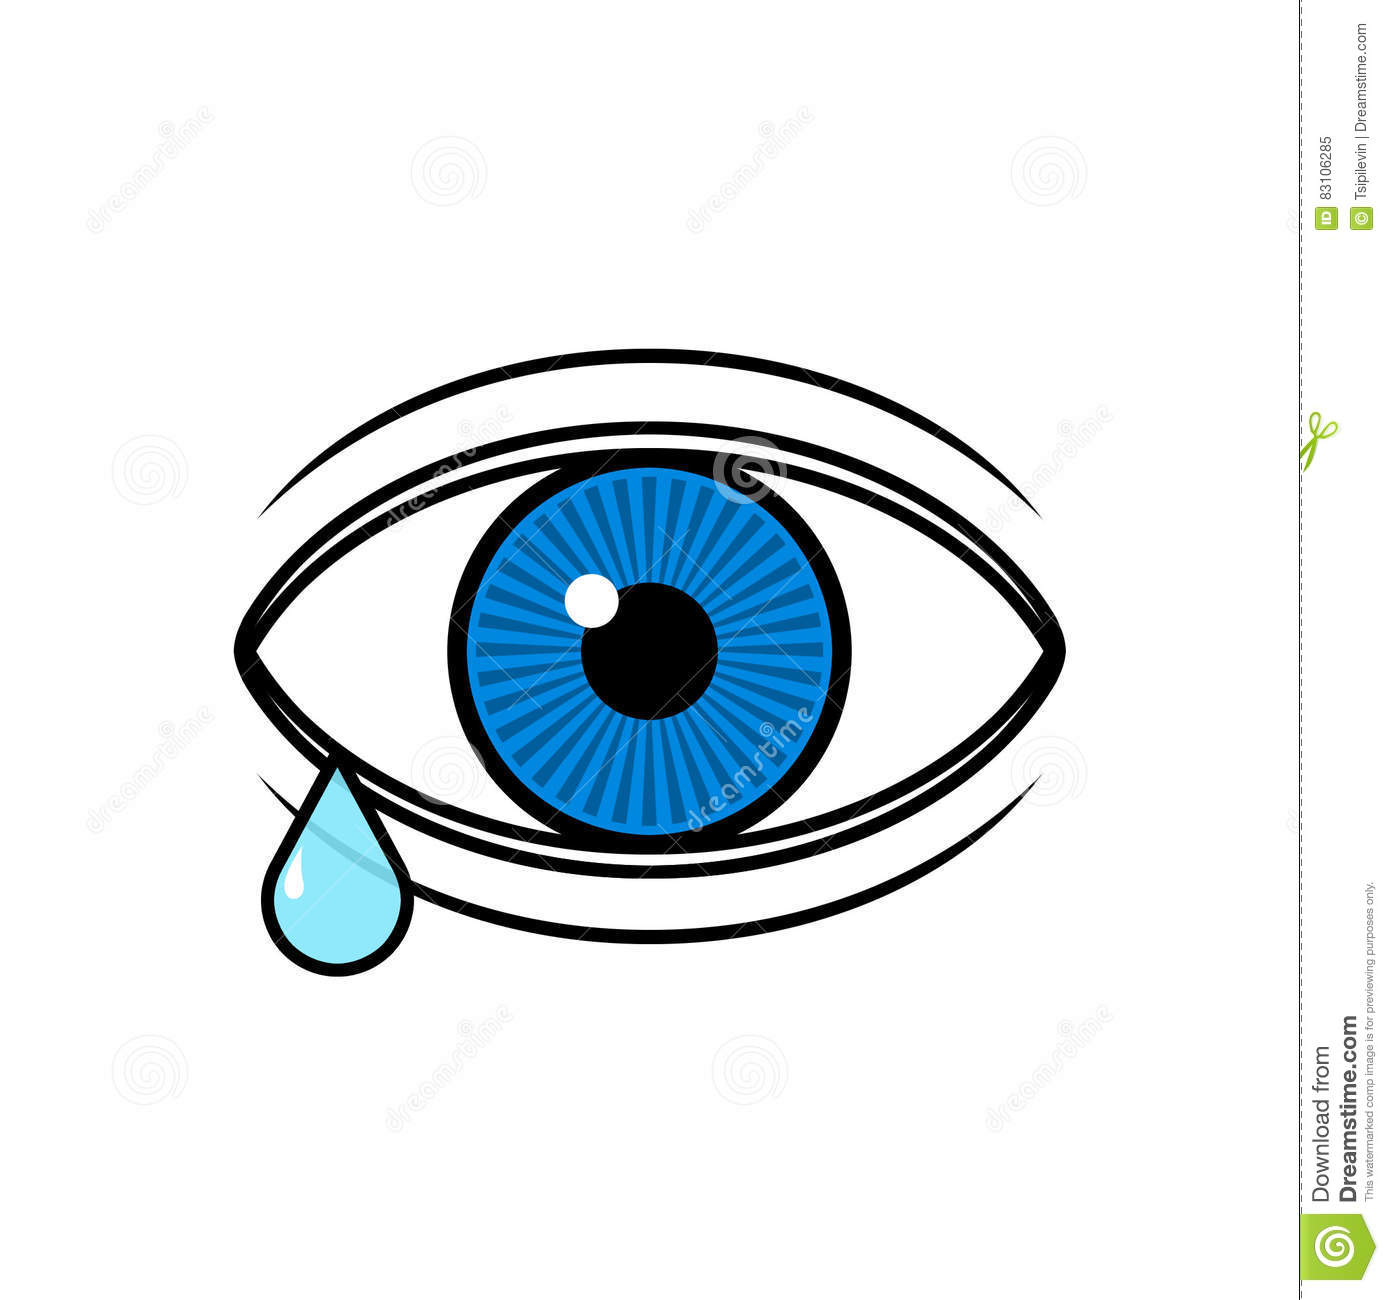 . ClipartLook.com Incredible Design Tear Clipart Eye With A Illustration Stock Of ClipartLook.com